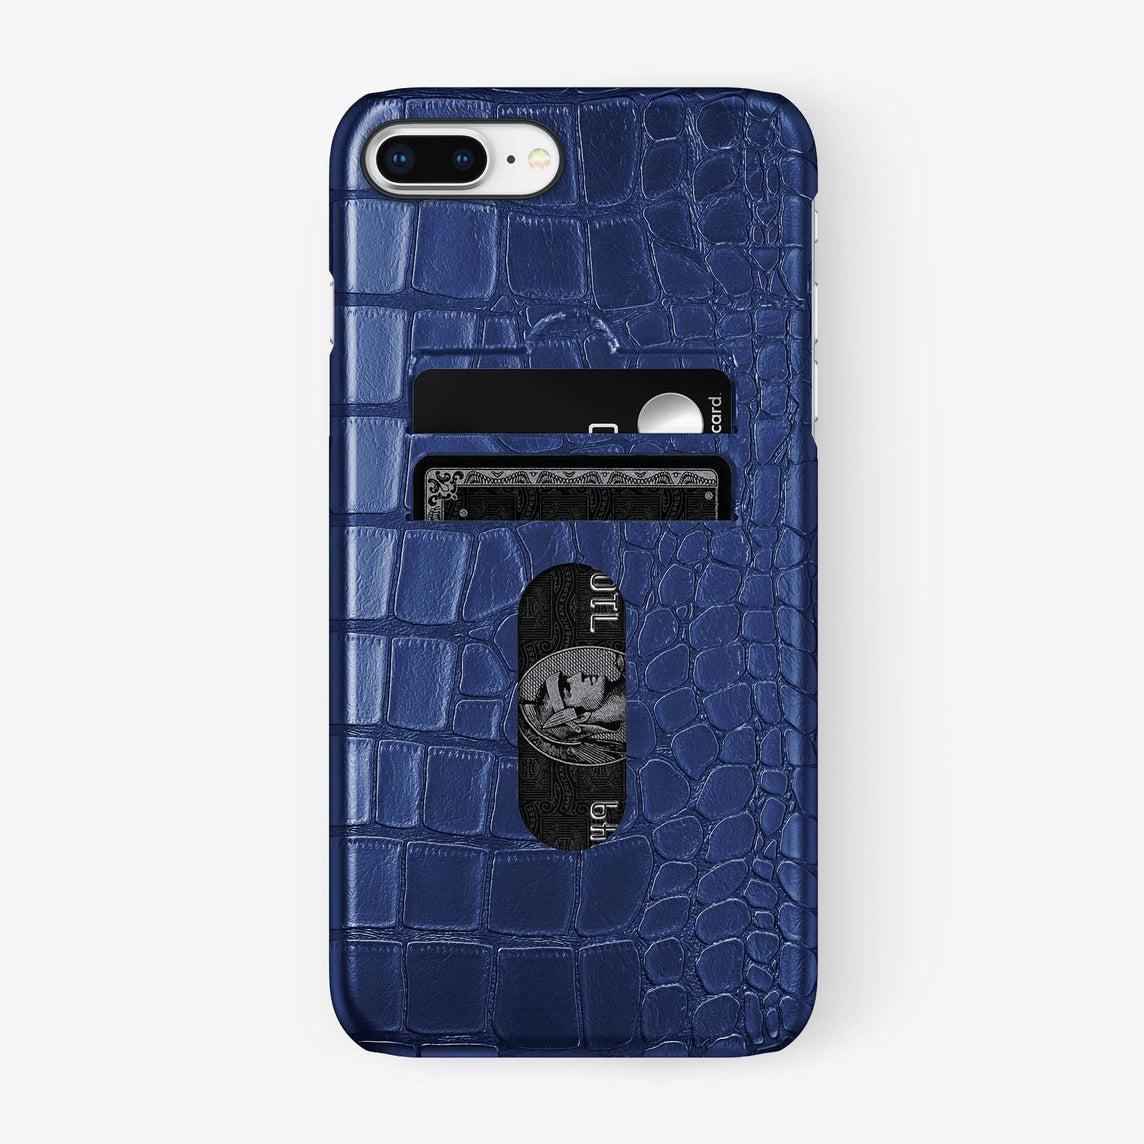 Alligator Card Holder Case iPhone 7/8 Plus | Navy Blue - Black